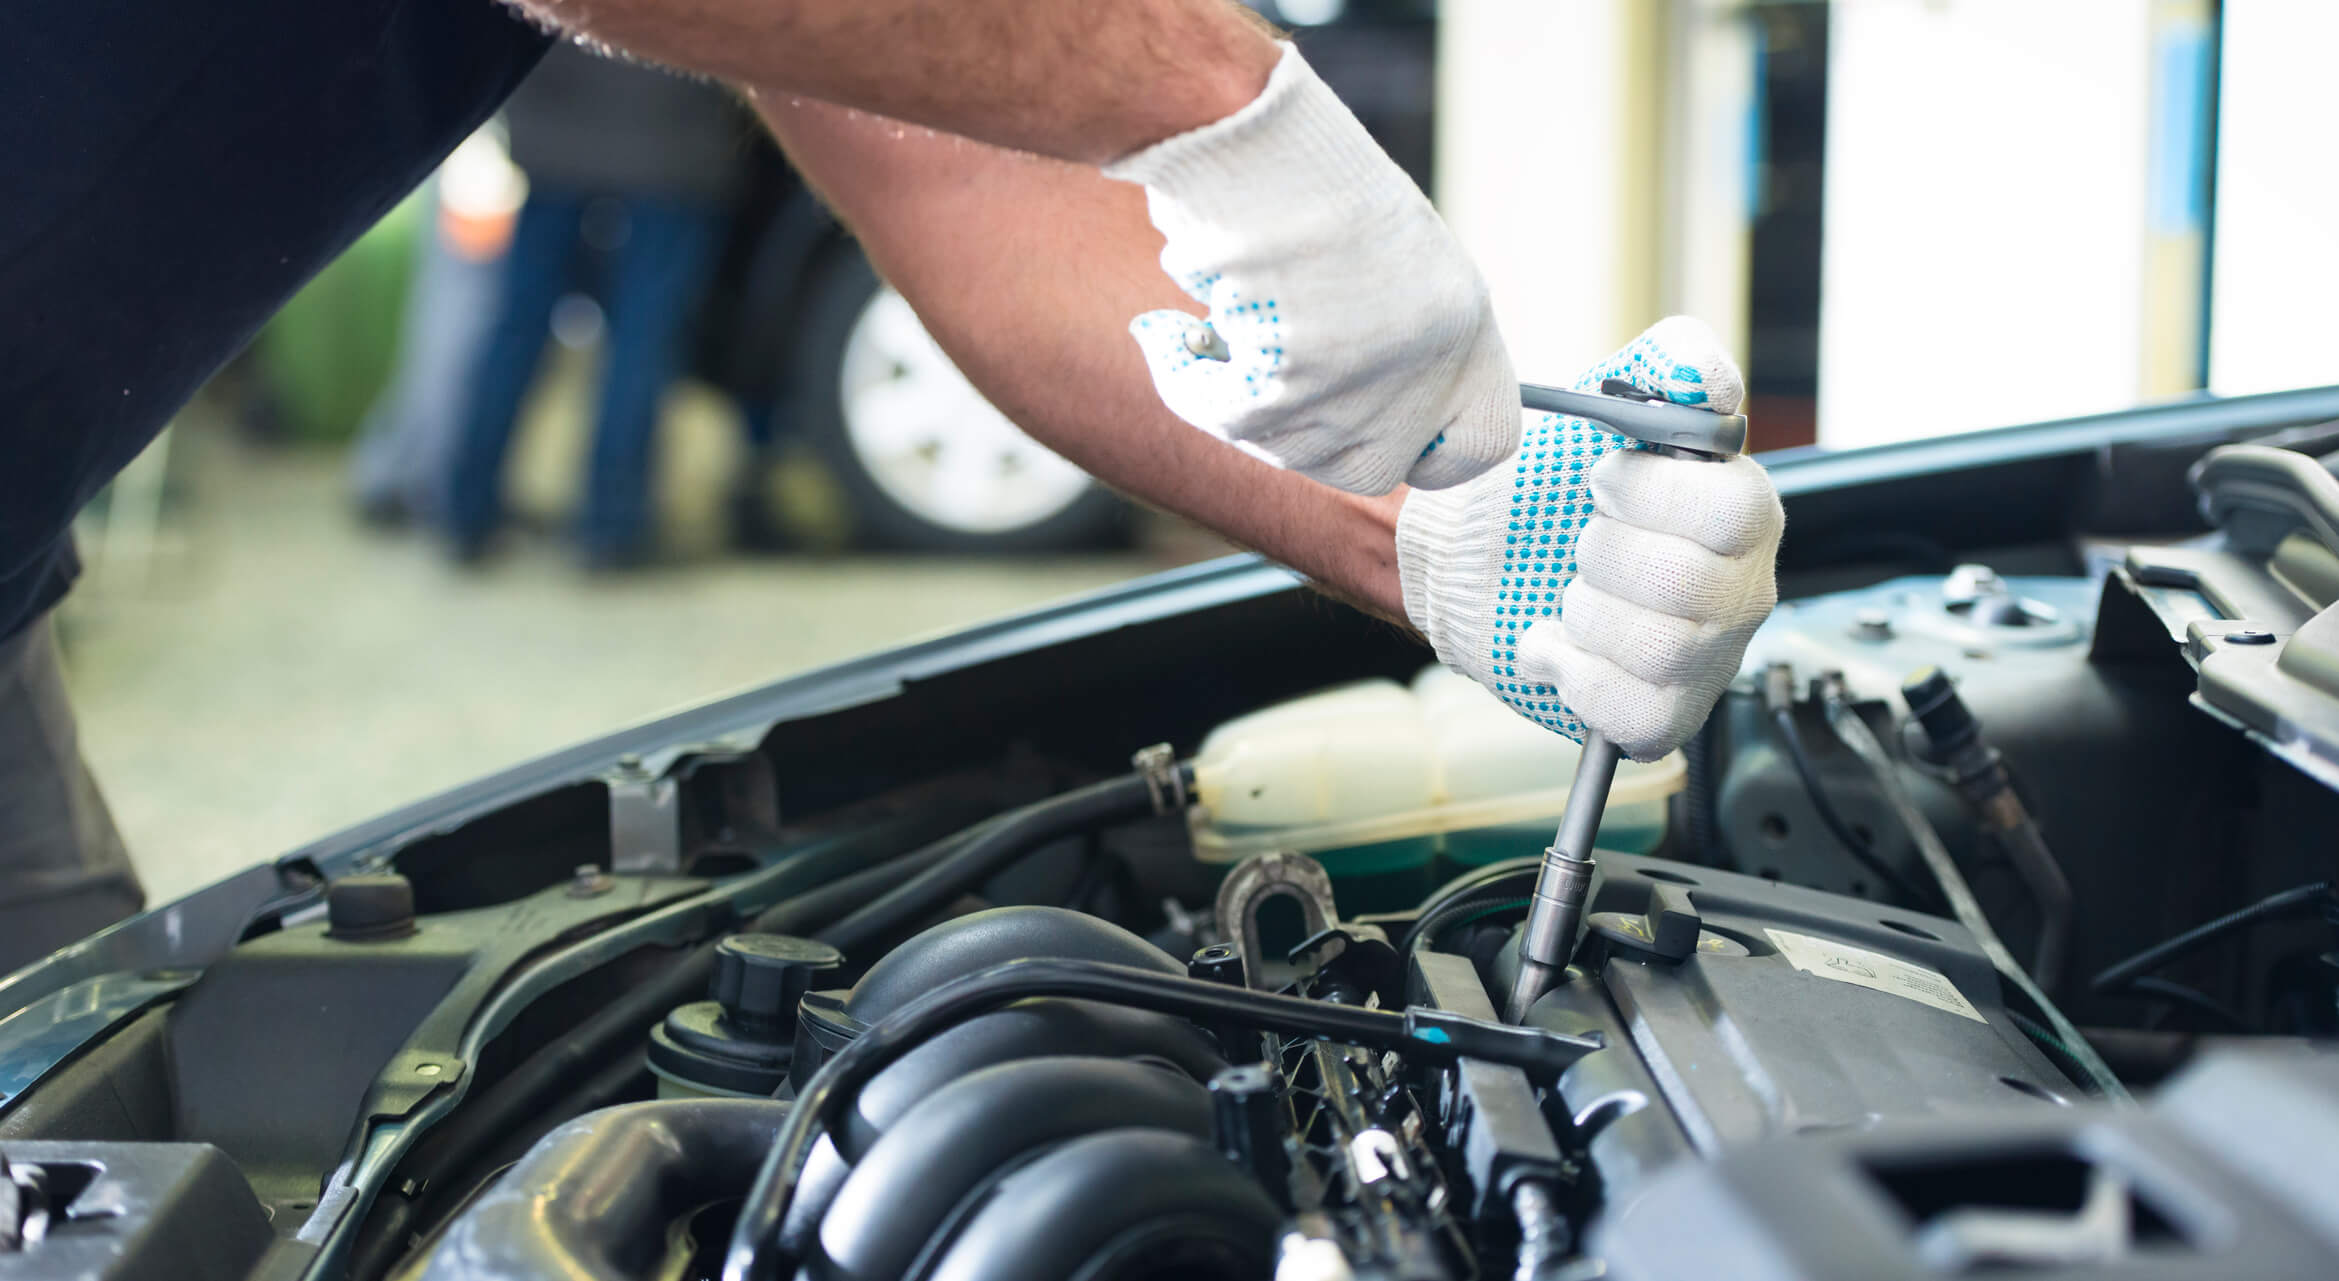 Find out more about the Mobile Radiator Repair, Daniel's ...